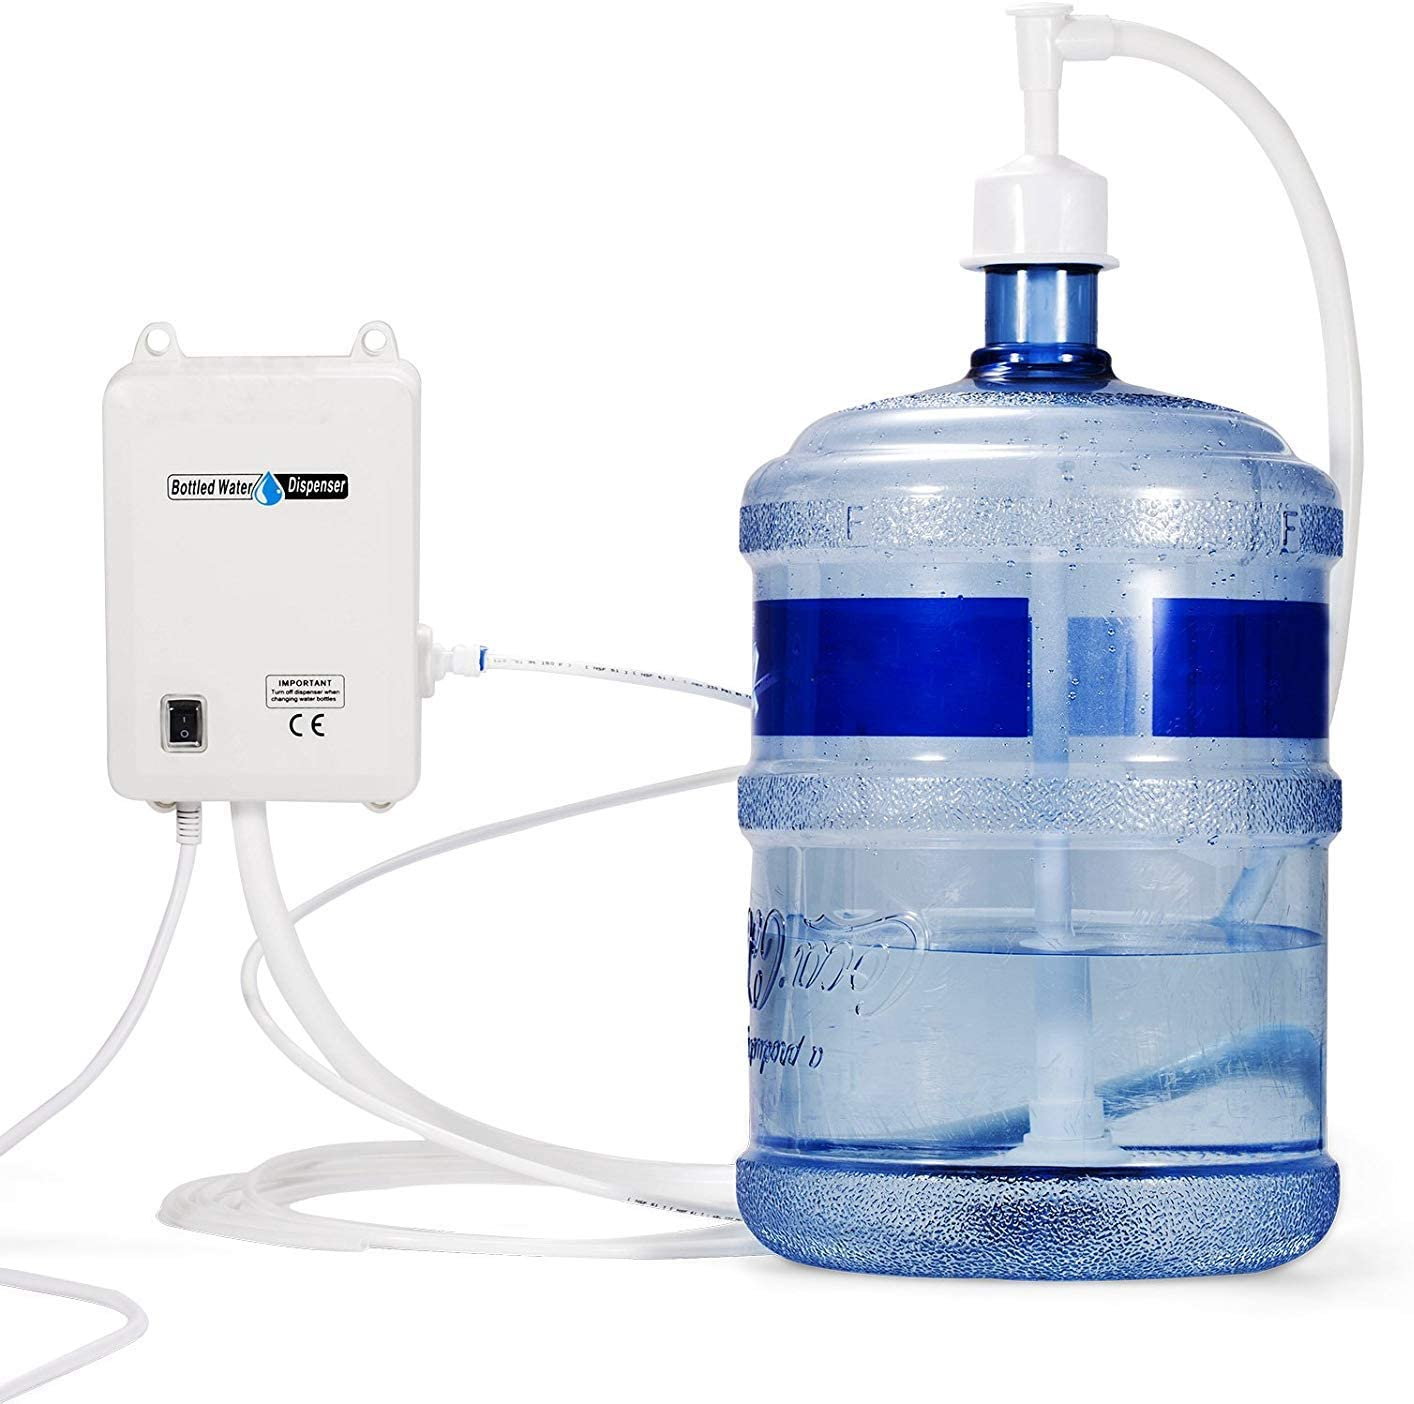 KITGARN Bottled Water System 1 Gal//Min Bottled Water Pump 40 PSI Bottle Water Dispensing Pump System with 20ft PE Pipe 1 Gal//Min